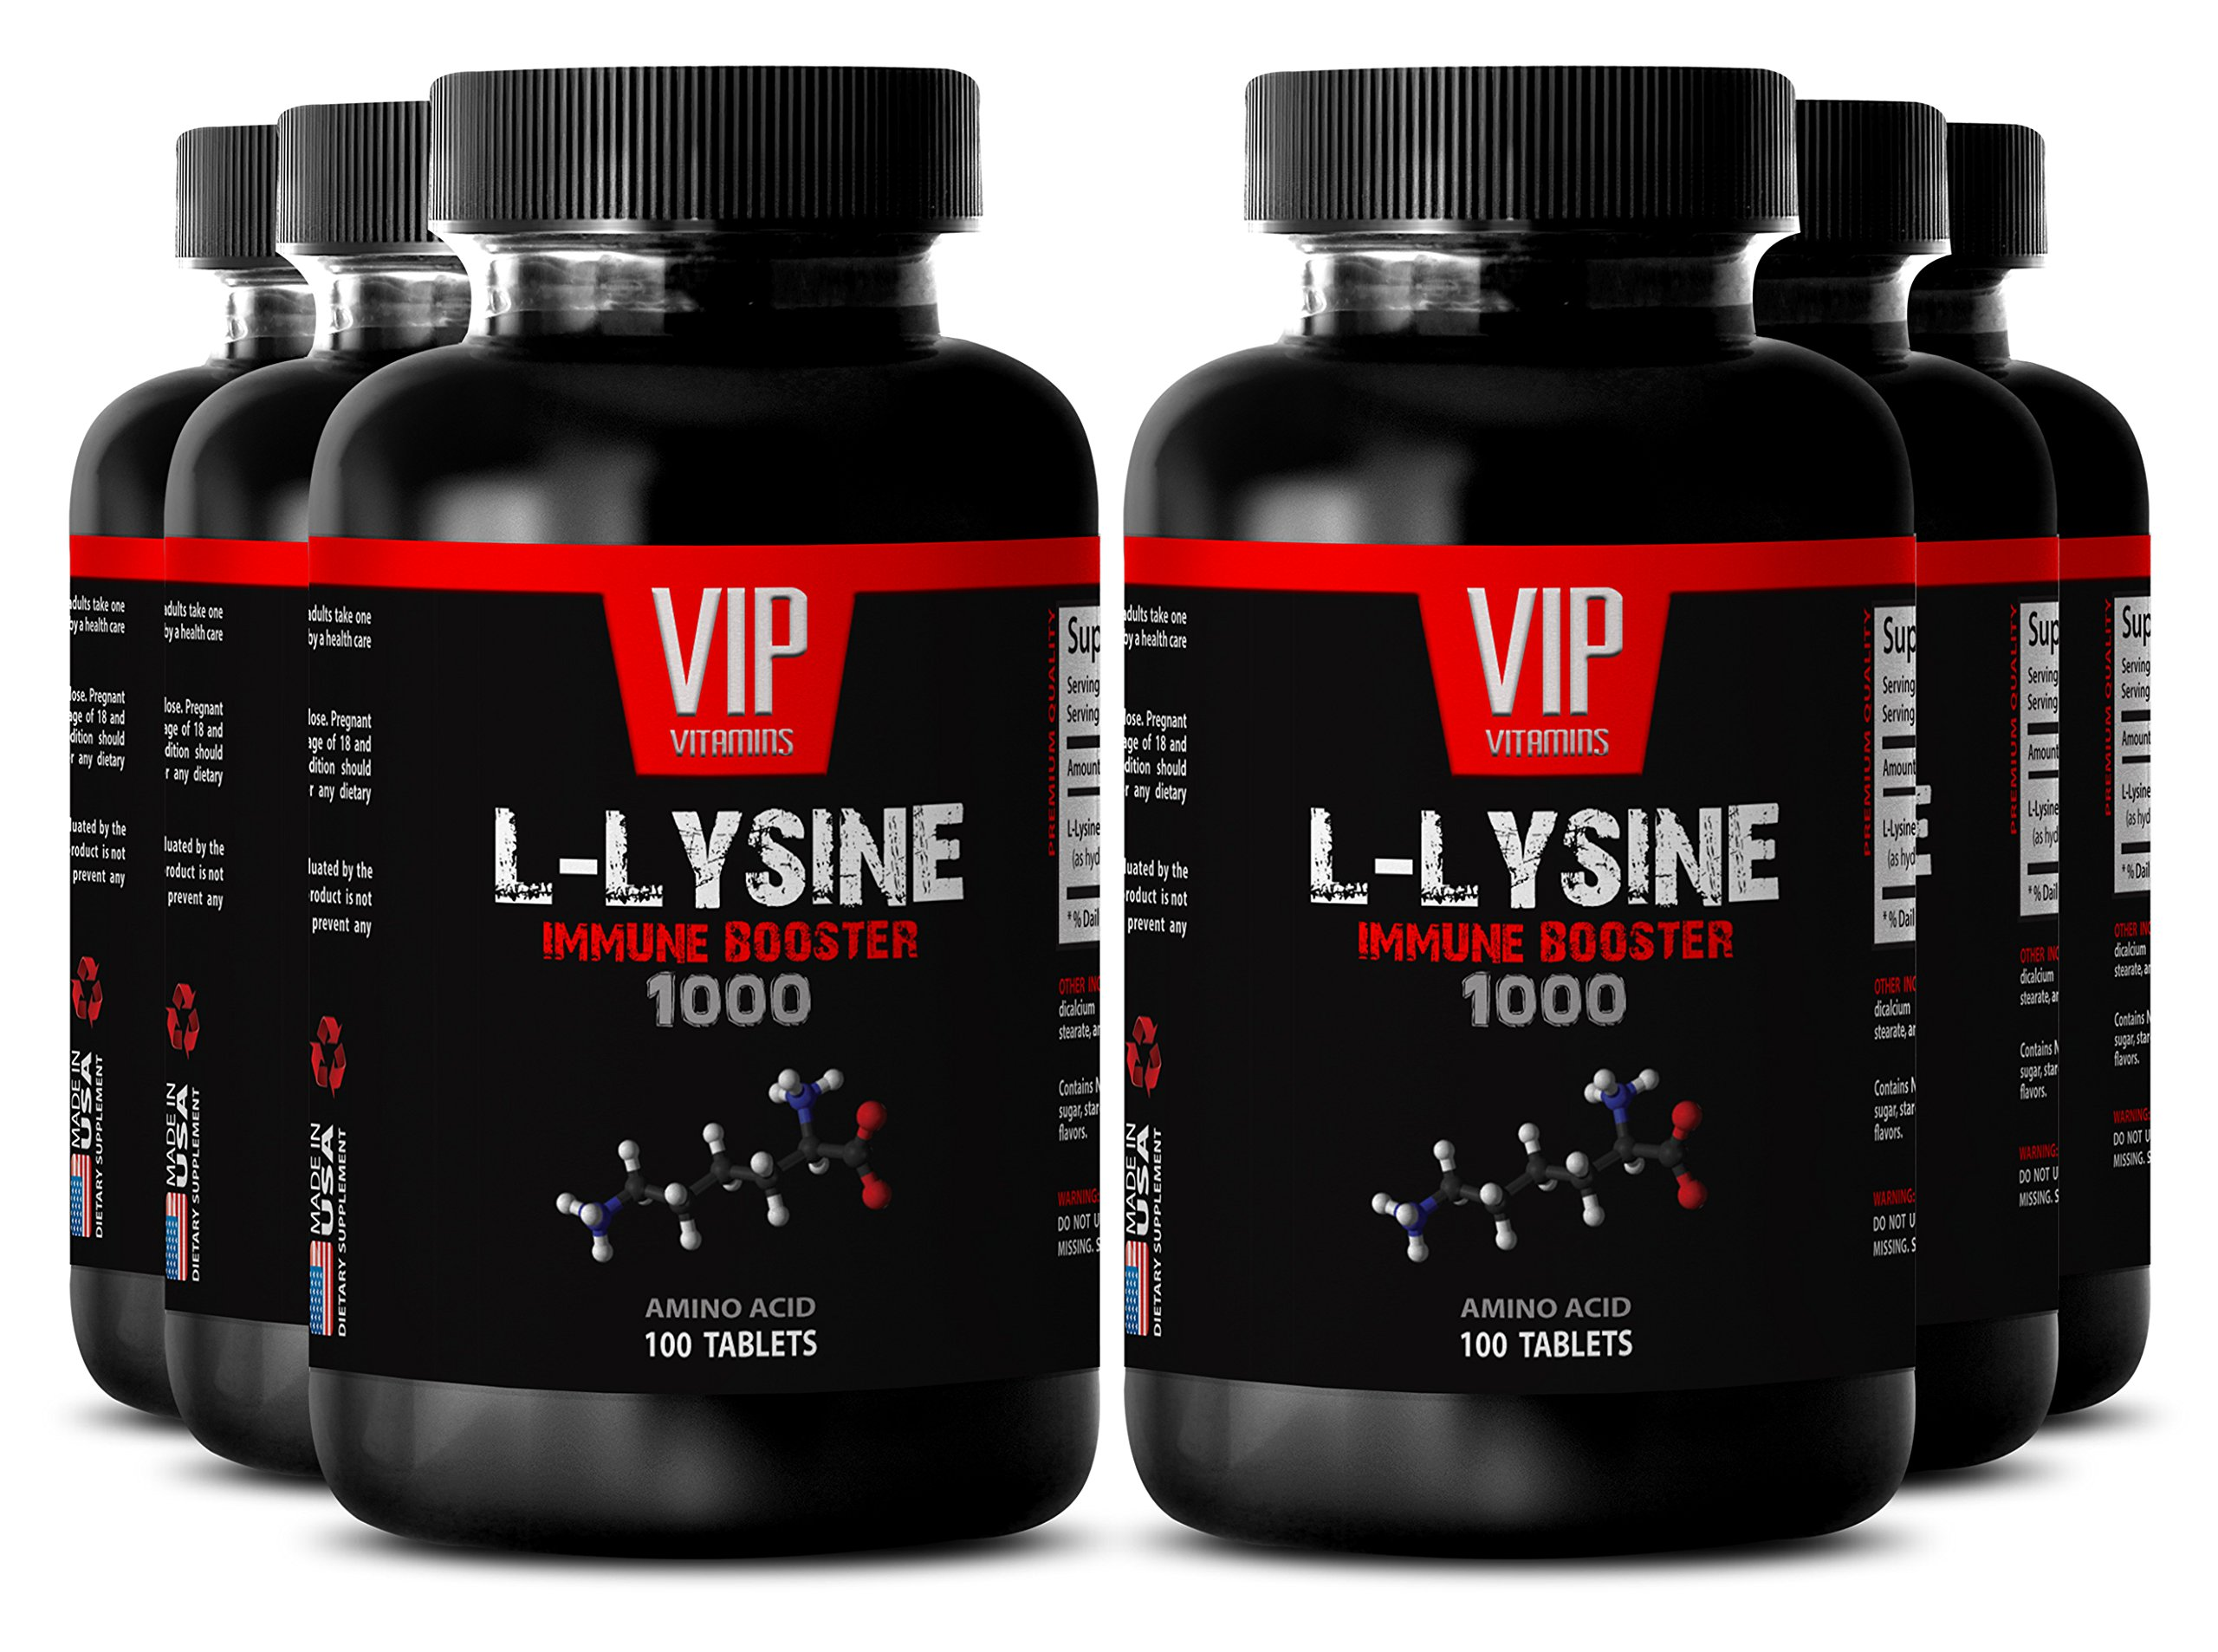 VIP VITAMINS Bodybuilding supplements - L-LYSINE IMMUNE BOOSTER 1000 - Bone strength - 6 Bottles 600 tablets